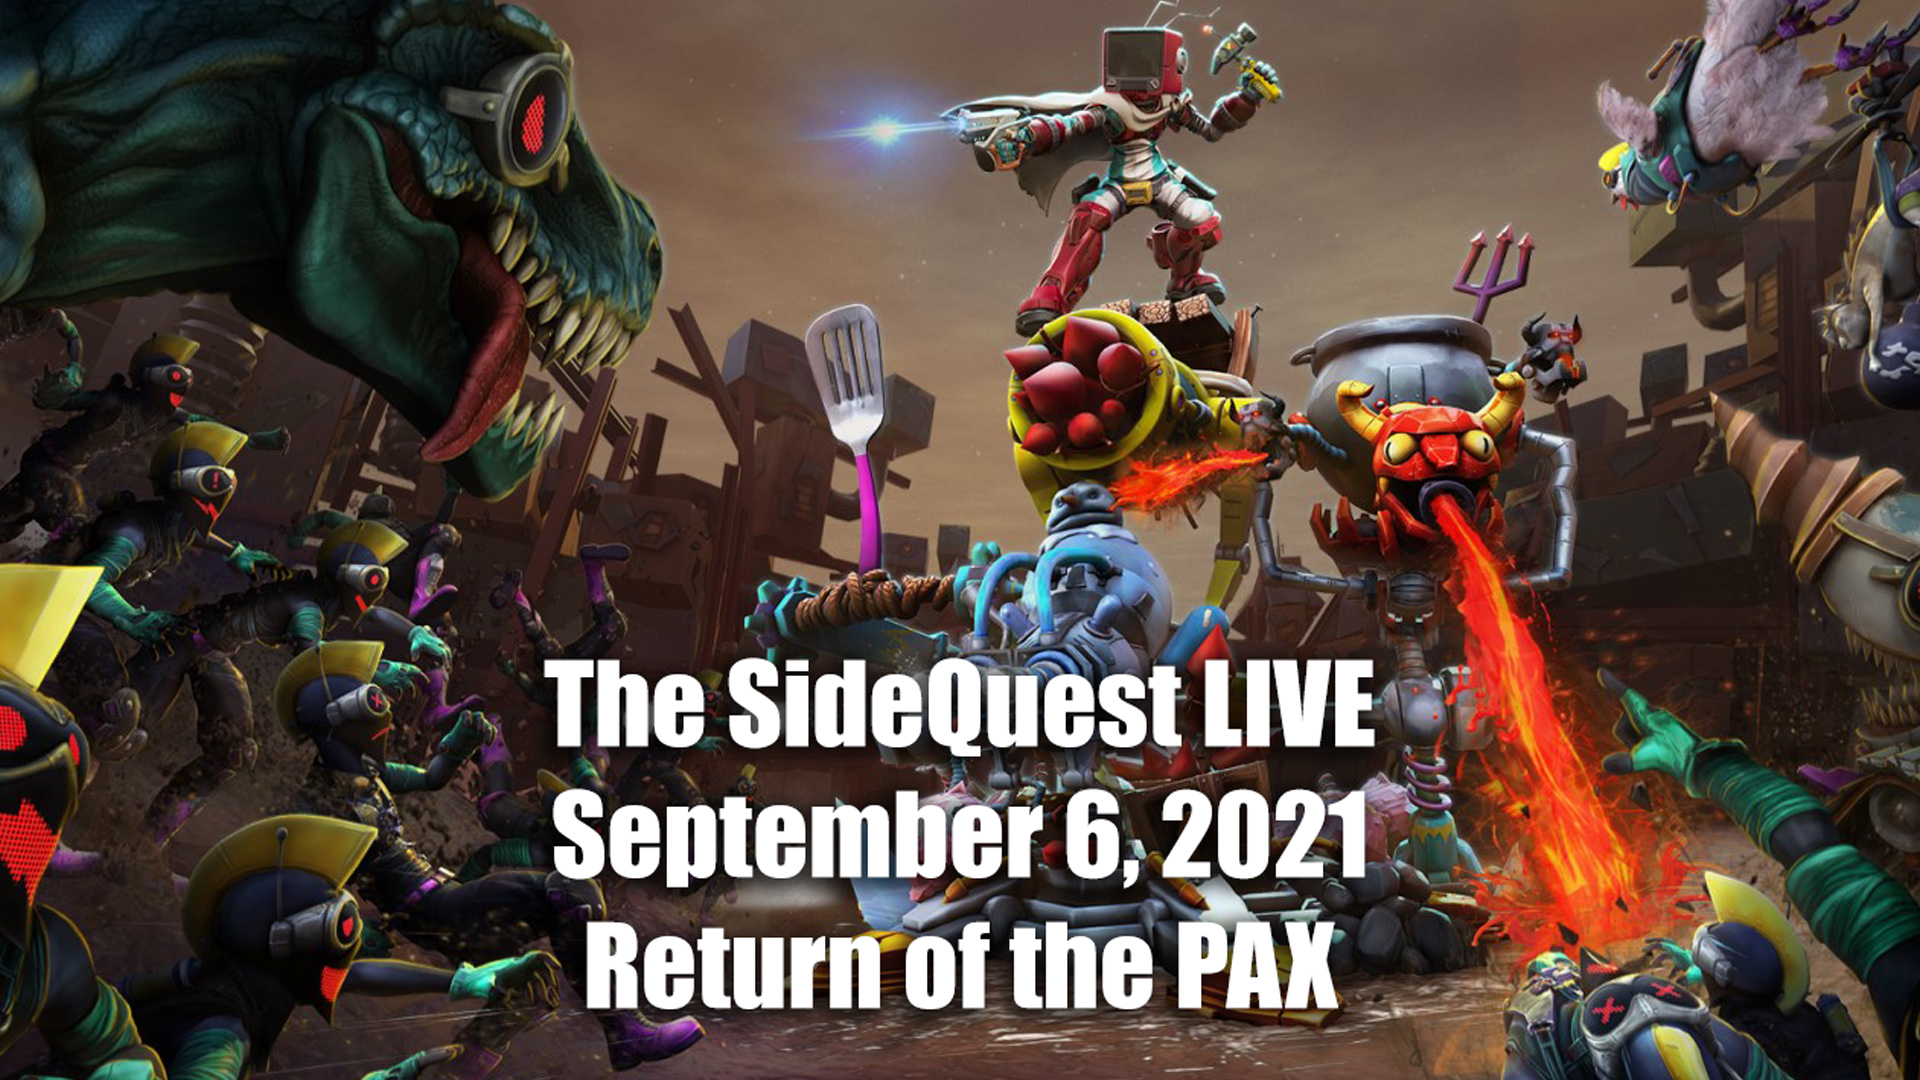 The SideQuest LIVE September 6, 2021: Return of the PAX